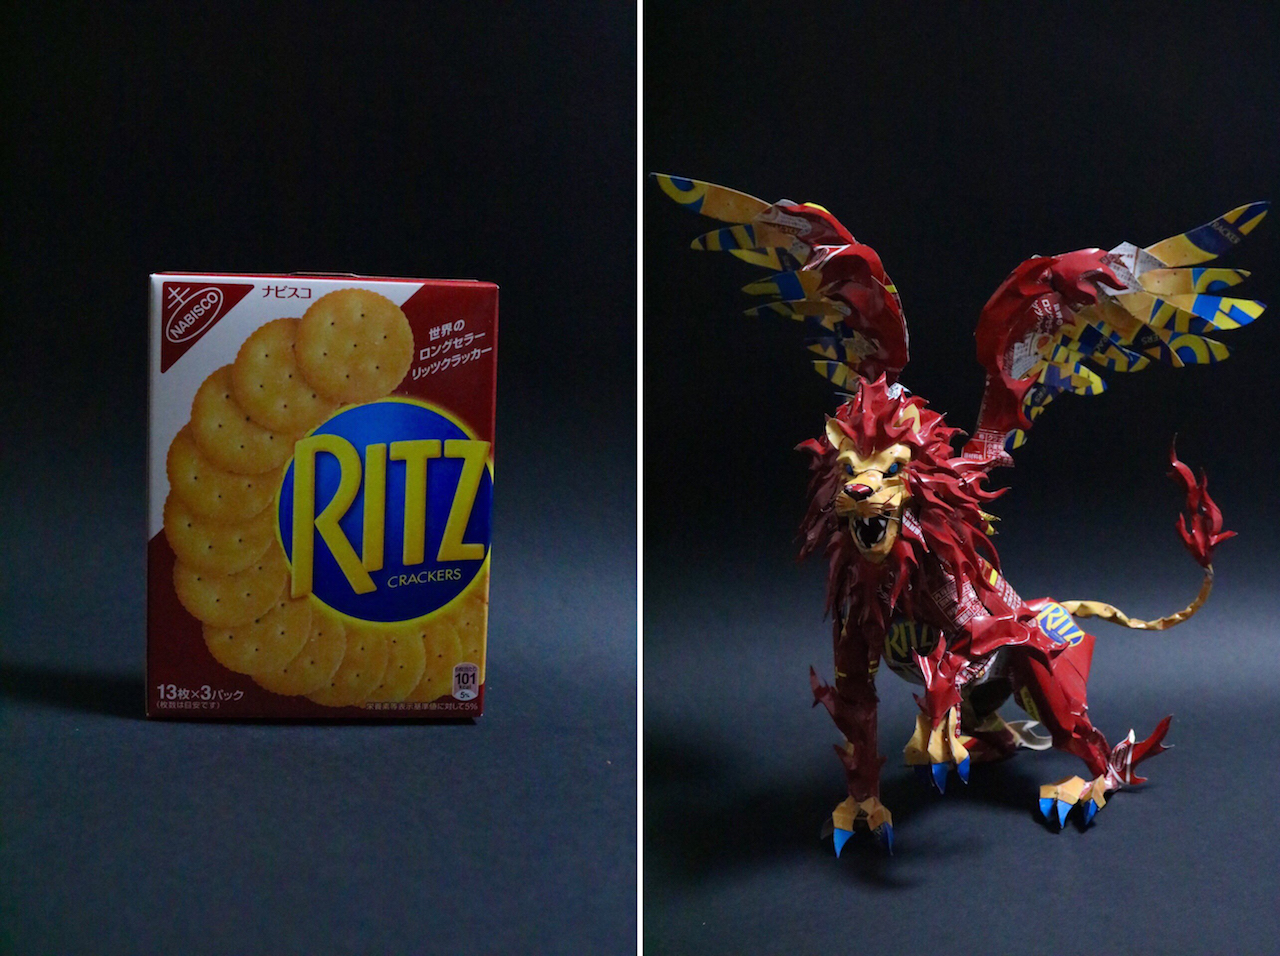 Product Packaging Turned Into Art - 2a